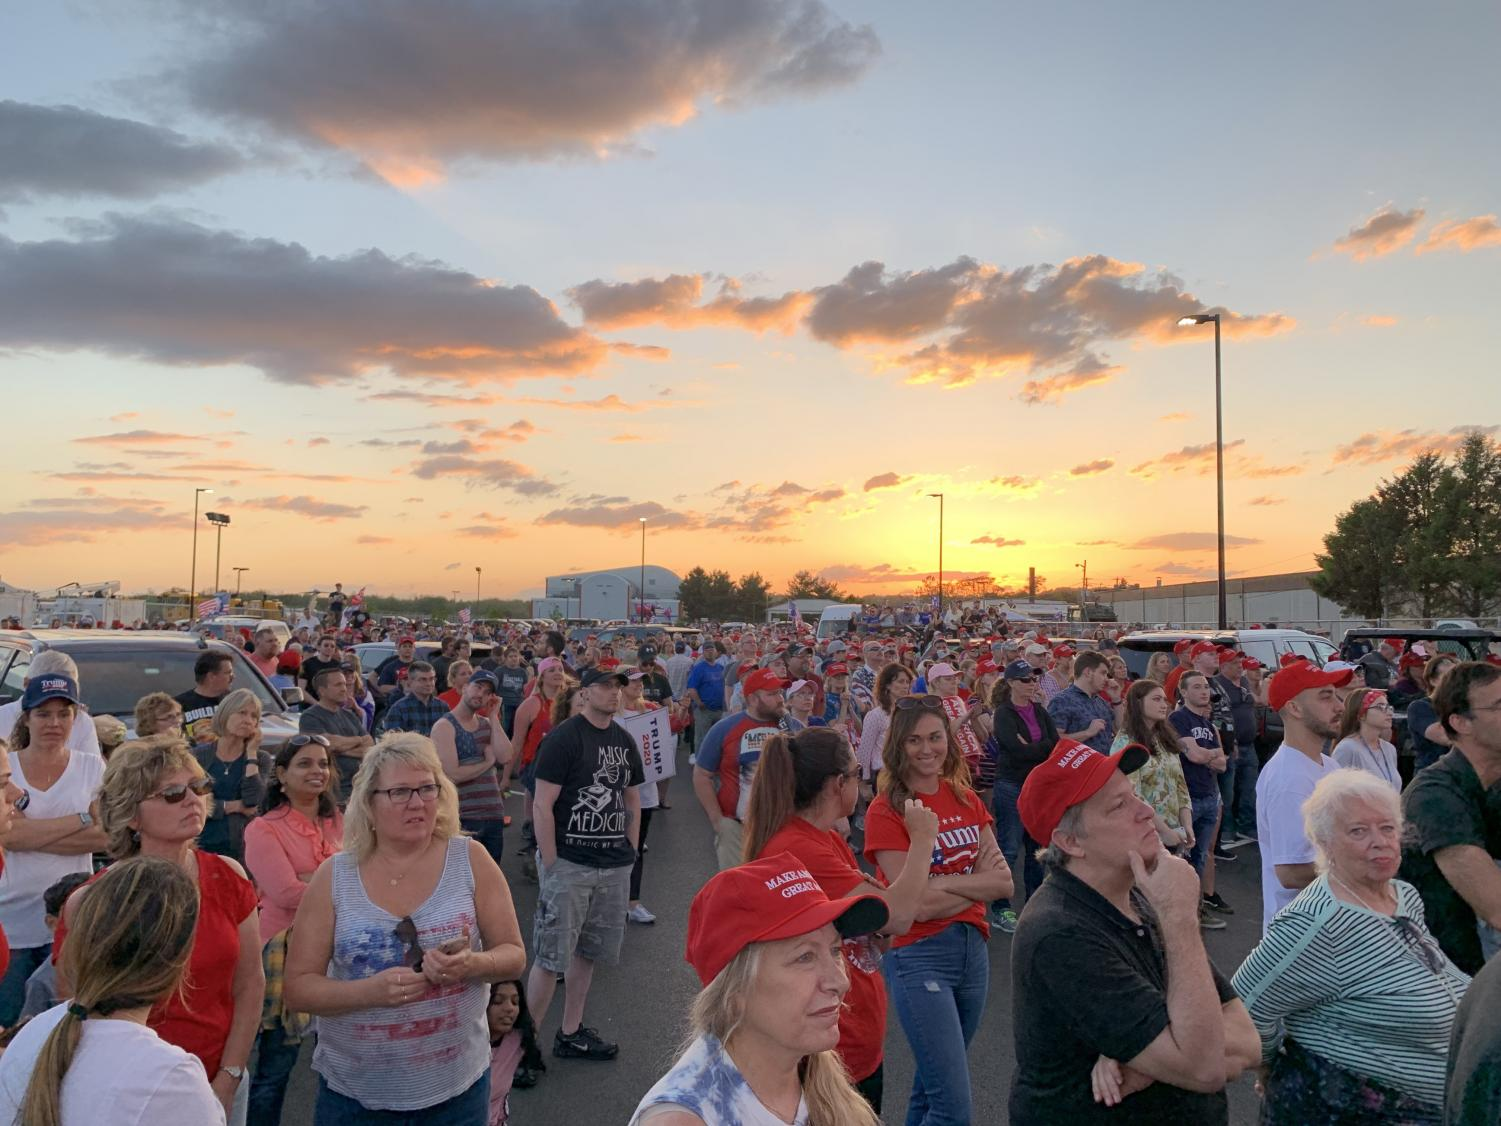 Thousands of Trump fans gather at the Williamsport Regional Airport to see him speak.